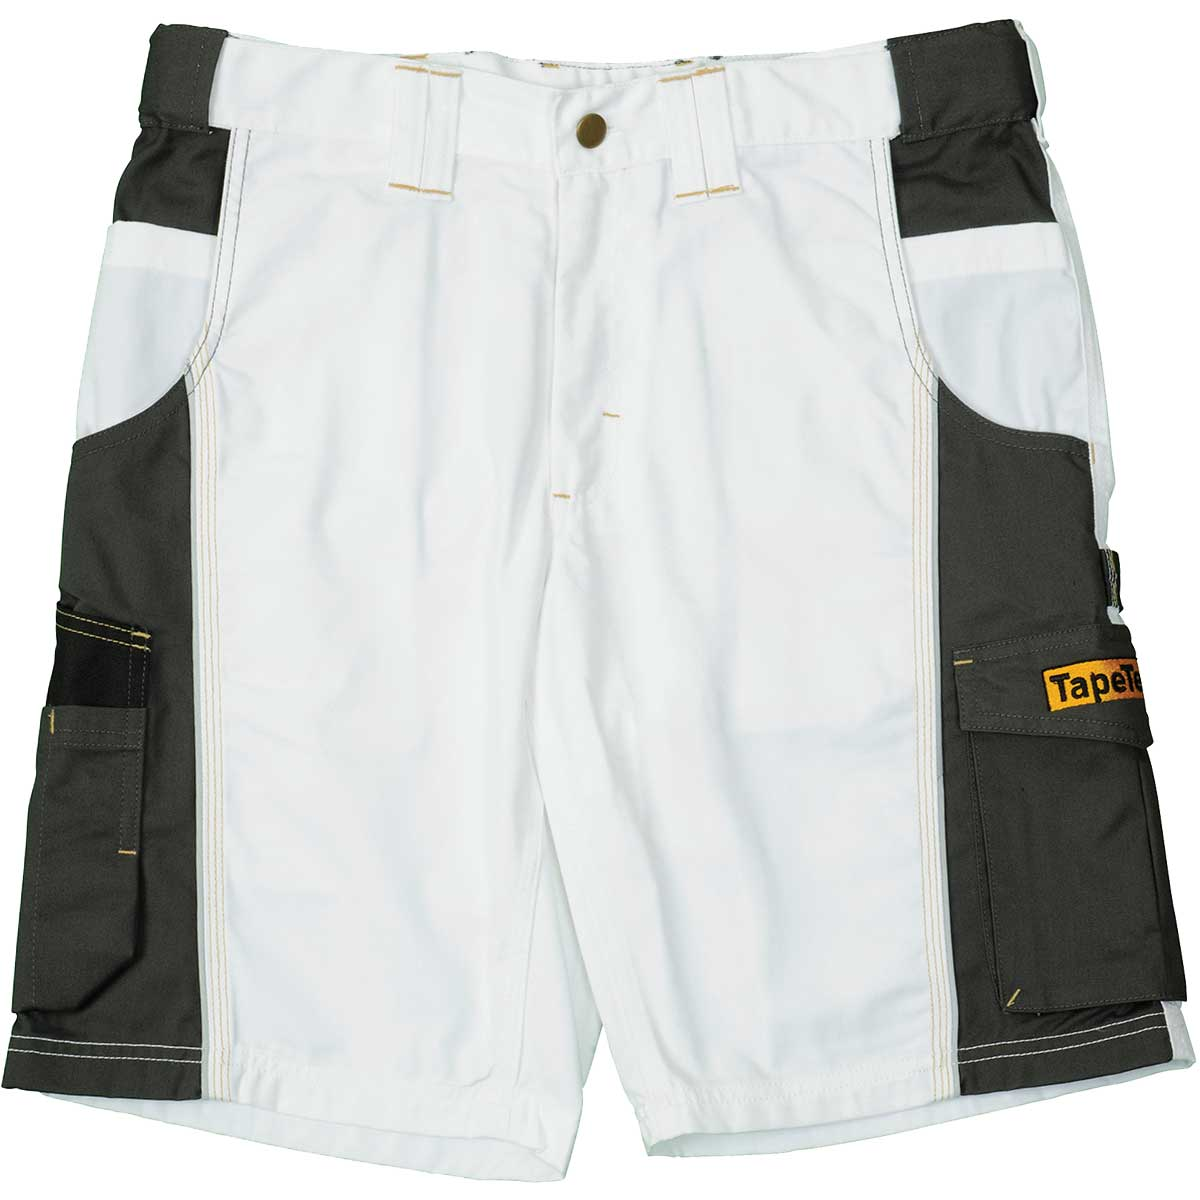 TapeTech Premium Work Shorts Size - 50